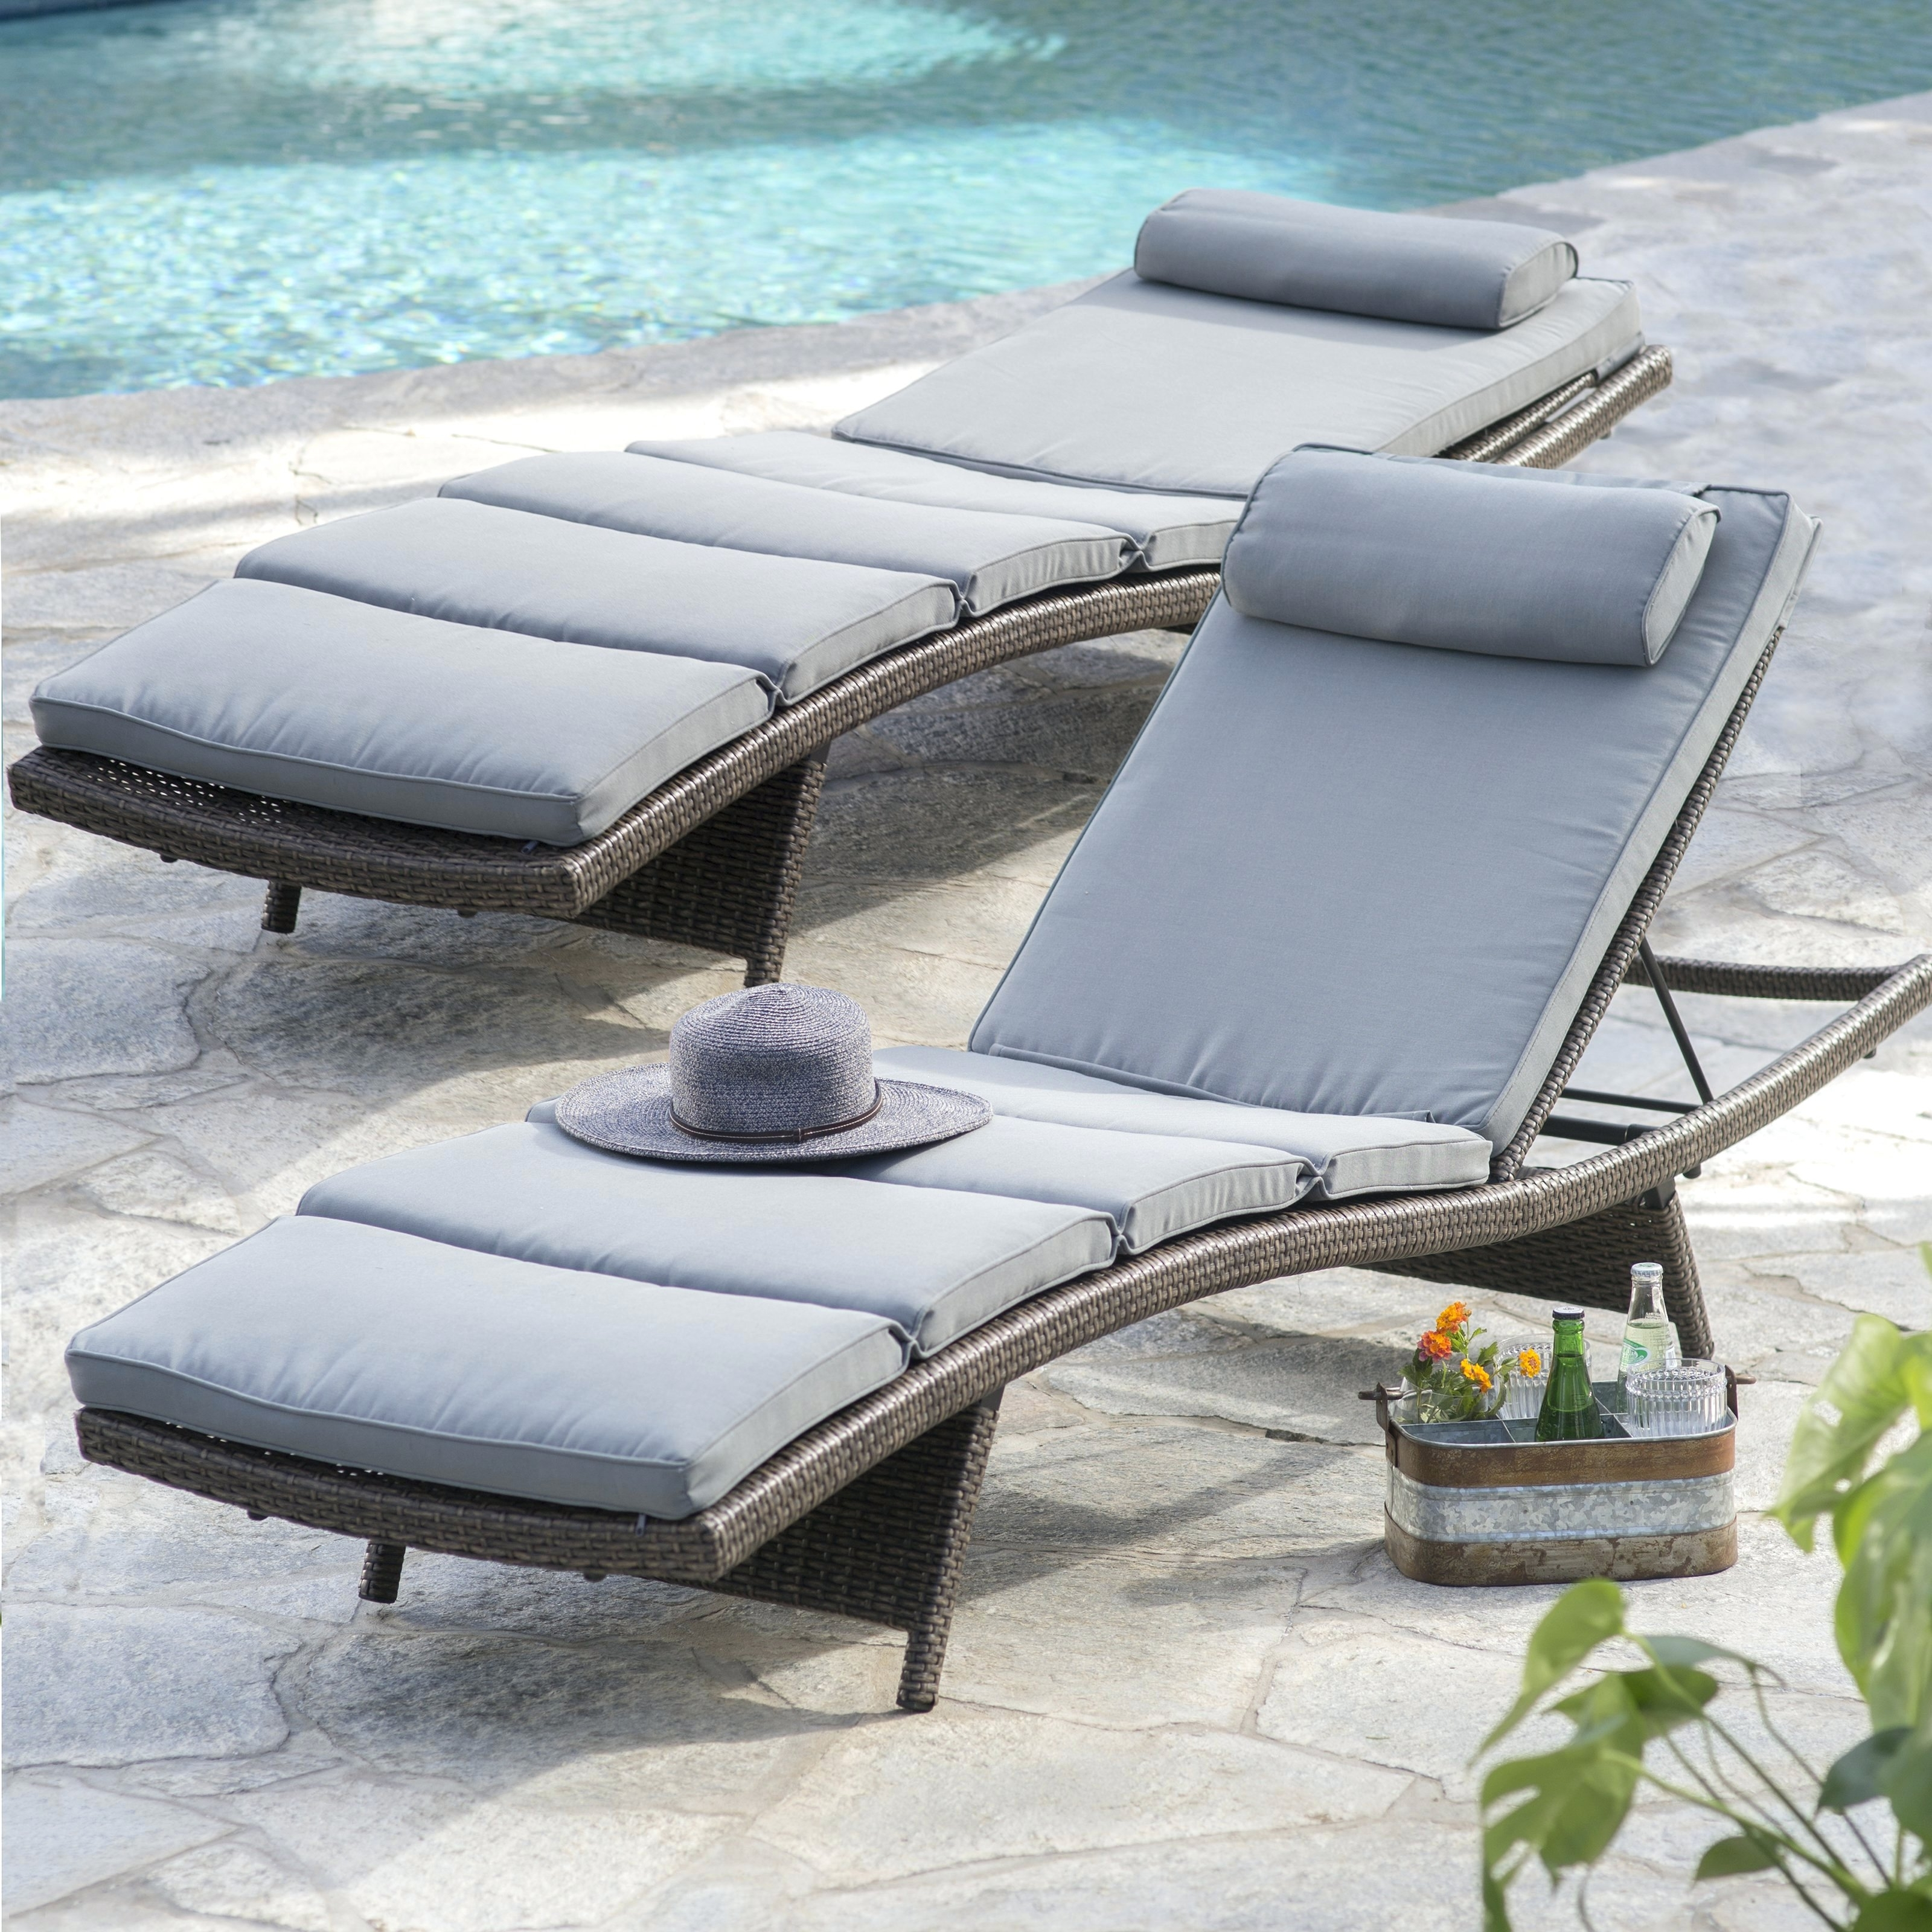 Newest Boca Chaise Lounge Chair Outdoor Pillow • Lounge Chairs Ideas Regarding Boca Chaise Lounge Outdoor Chairs With Pillows (View 3 of 15)